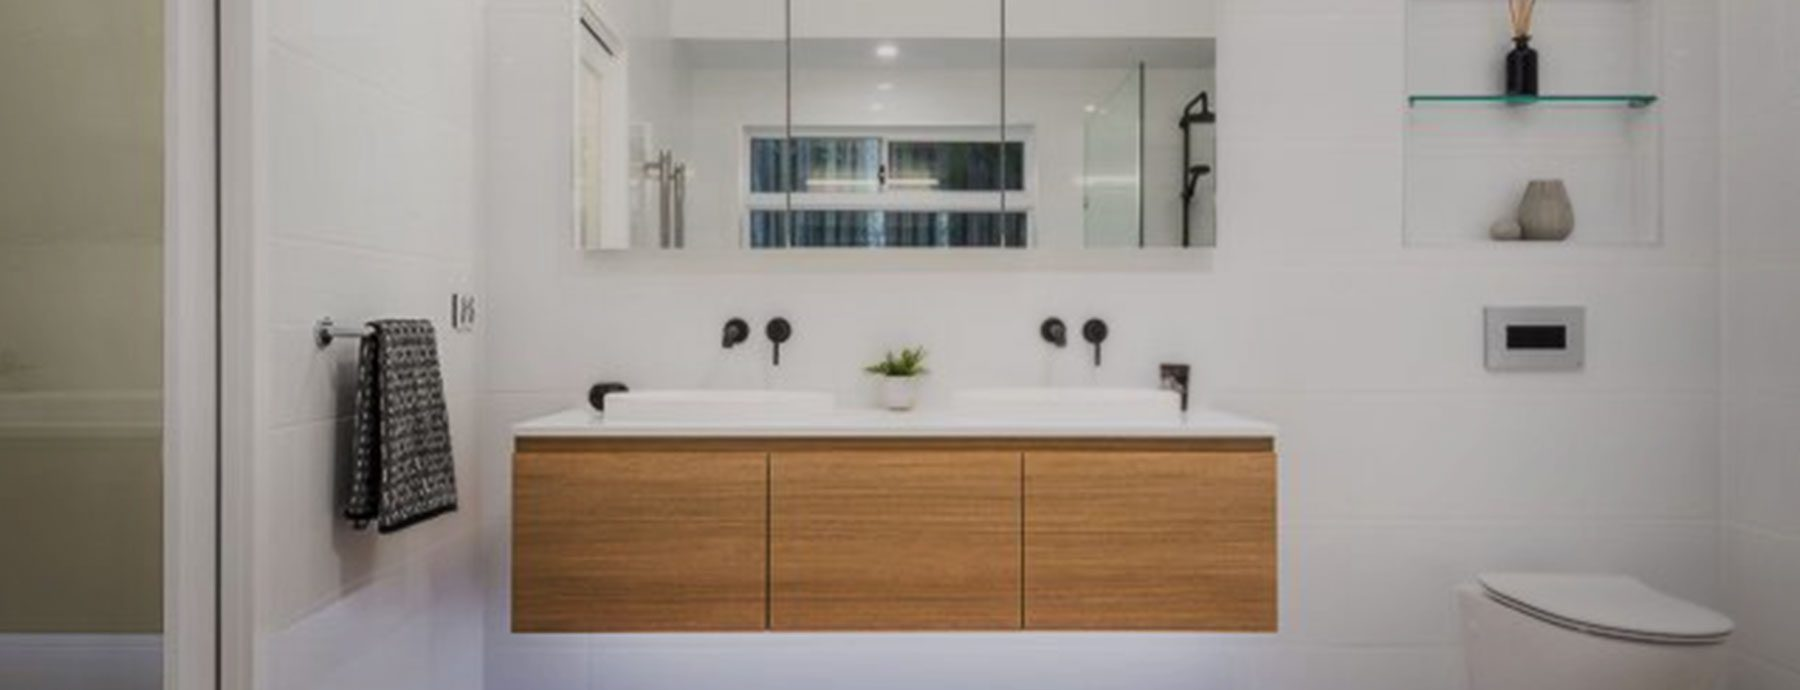 KBDi 2018 Qld Bathroom Awards Finalist Large Bathroom